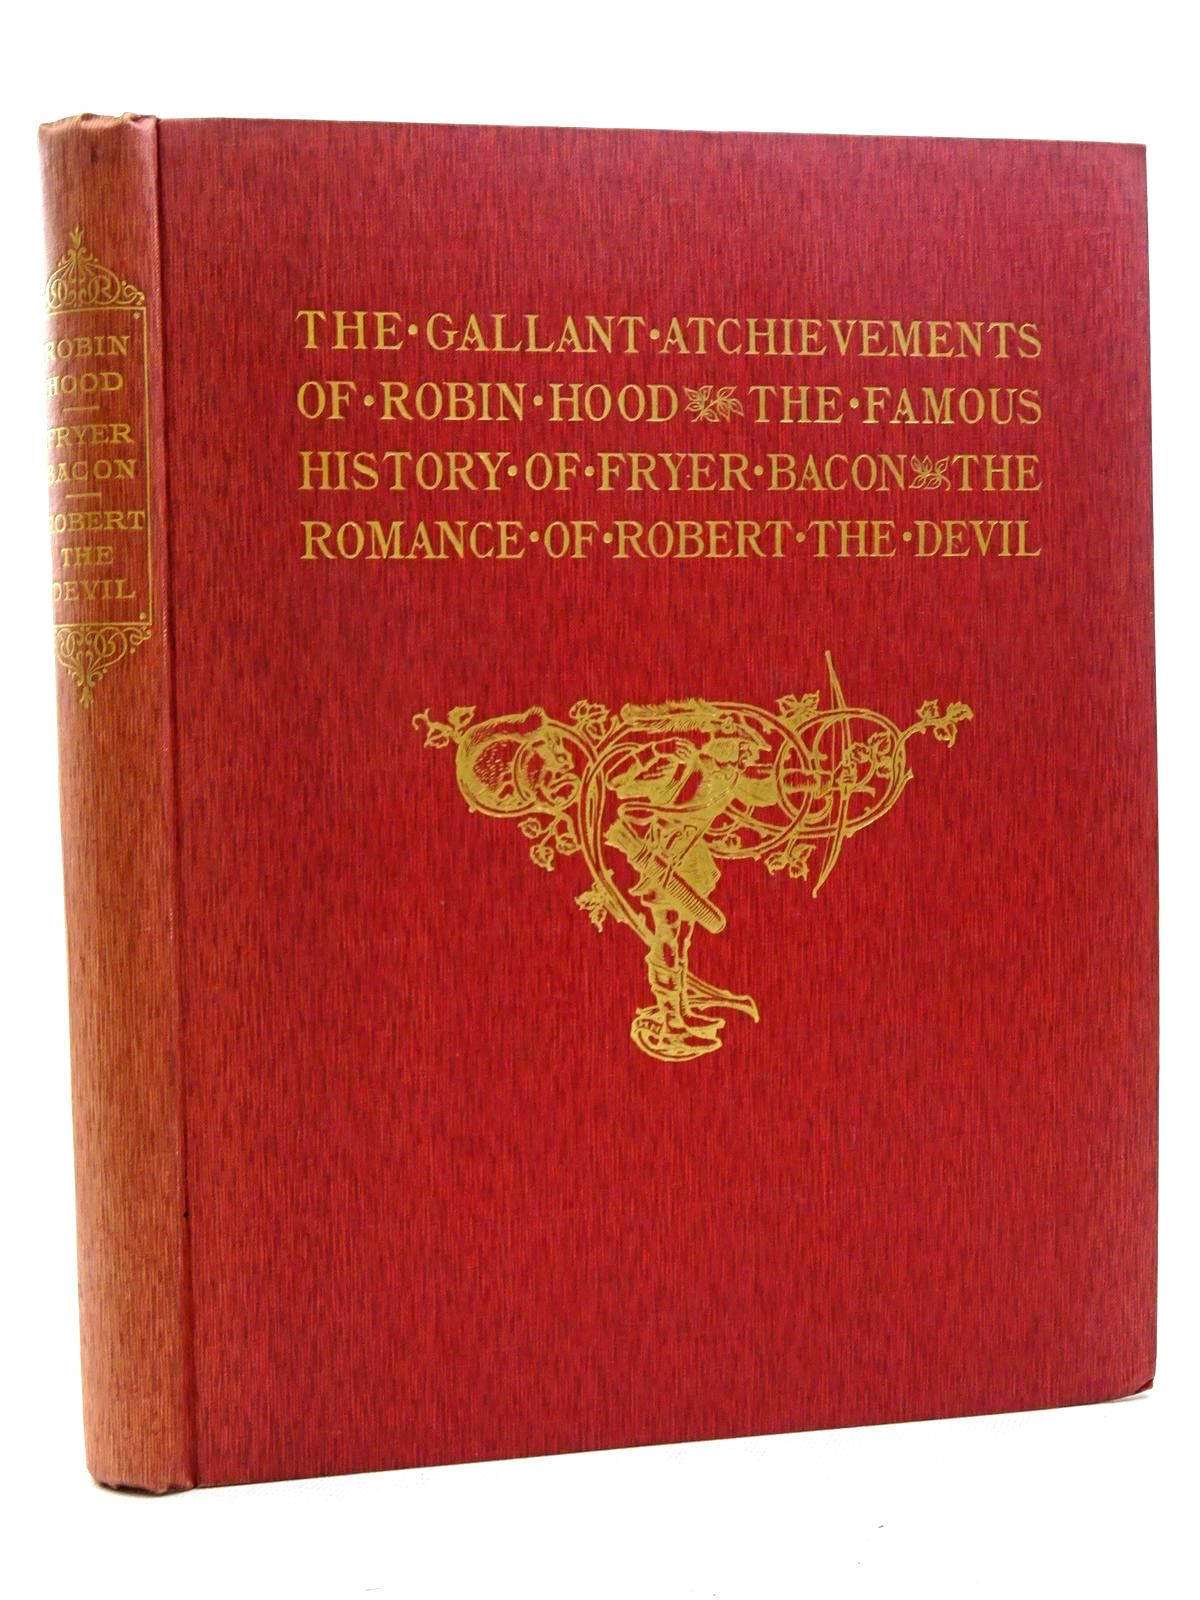 Photo of THE GALLANT ATCHIEVEMENTS OF ROBIN HOOD THE FAMOUS HISTORY FRYER BACON THE ROMANCE OF ROBERT THE DEVIL illustrated by Nelson, Harold published by Otto Schulze And Company (STOCK CODE: 2125328)  for sale by Stella & Rose's Books